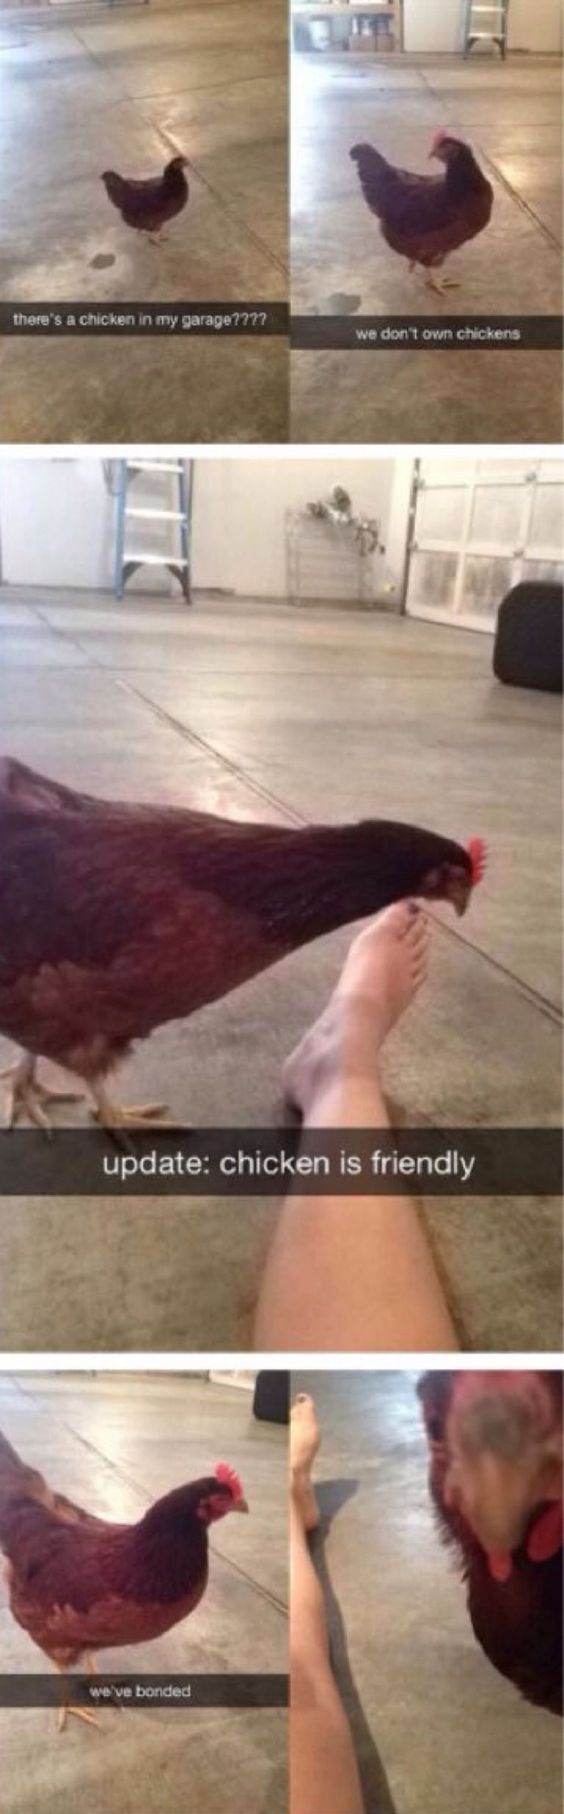 snapchat - Hair - there's a chicken in my garage???? we don't own chickens update: chicken is friendly we've bonded